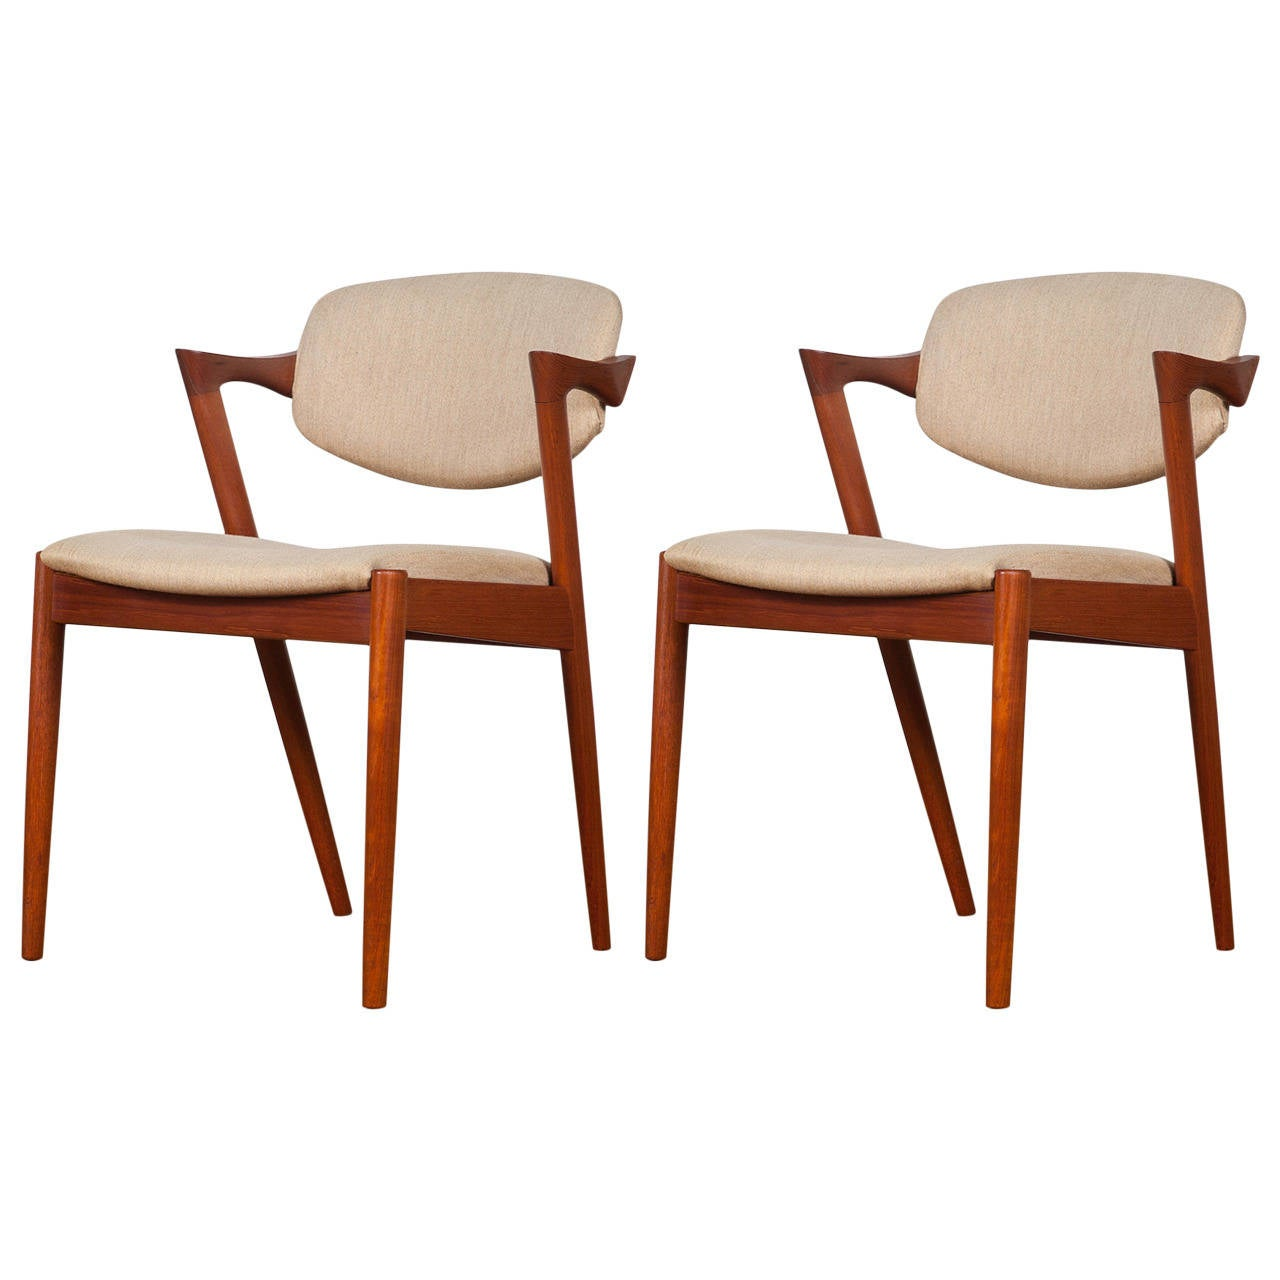 Danish Teak Dining Chairs Pair Of Mid Century Danish Model 42 Teak Dining Chairs By